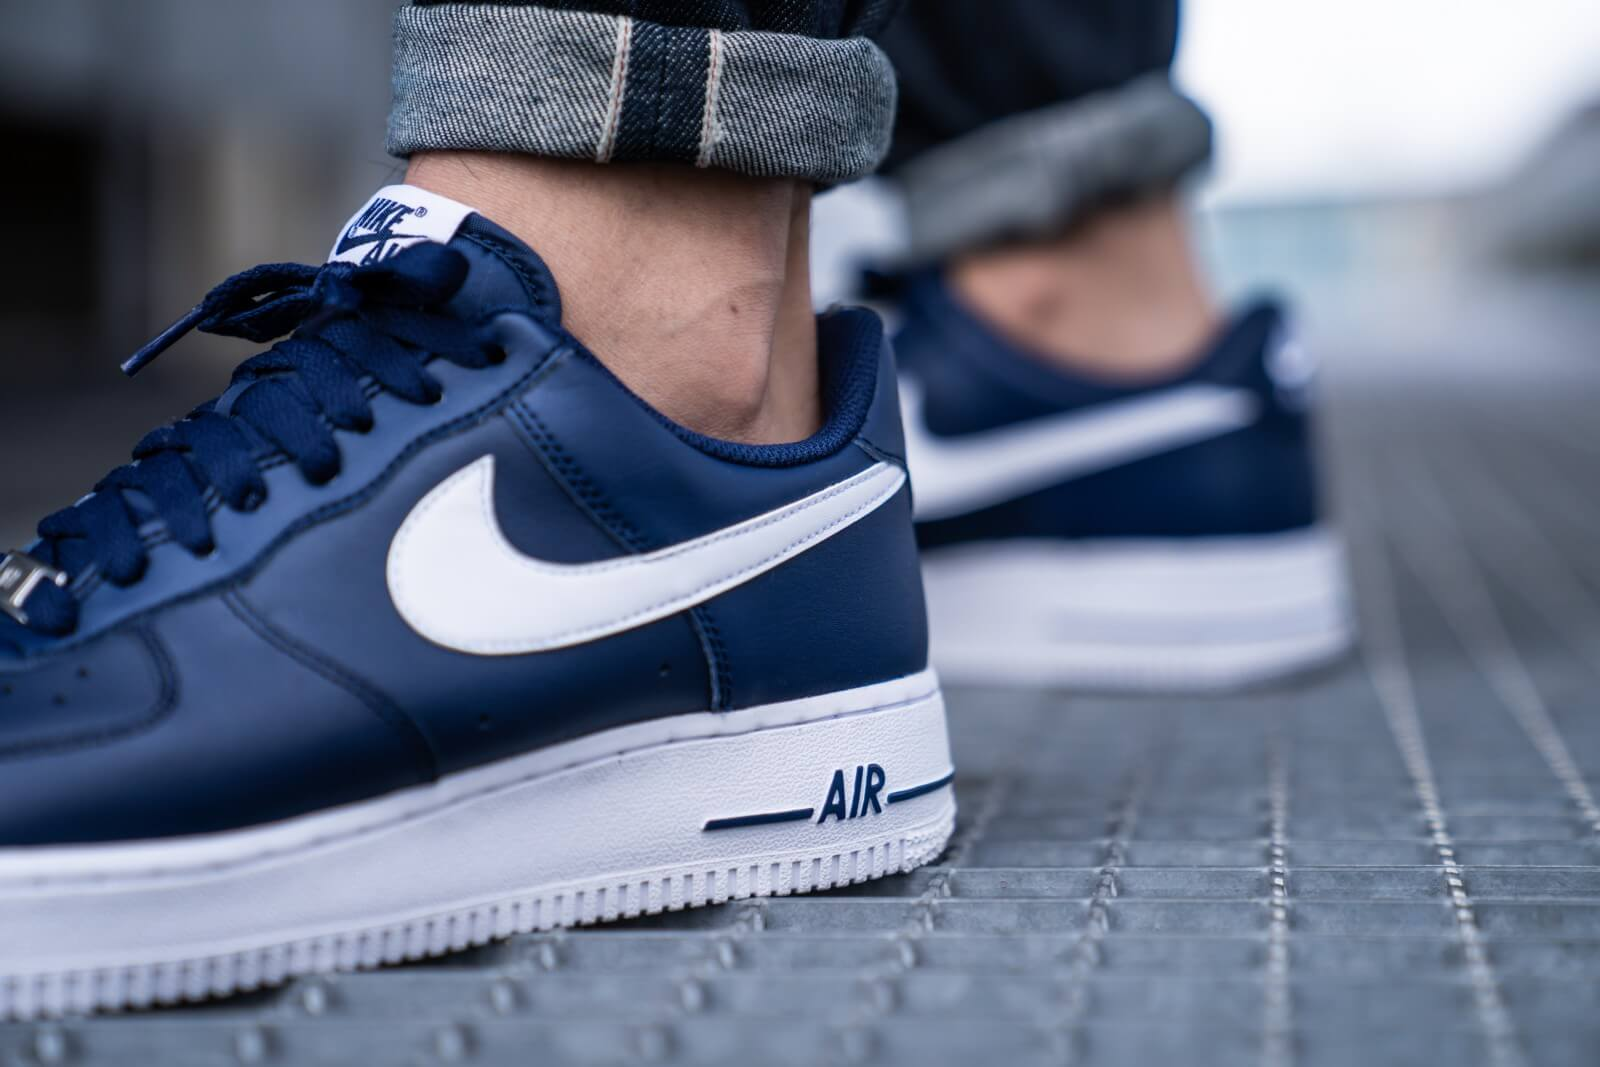 Nike Nike Air Force 1 Wit Navy Blauw